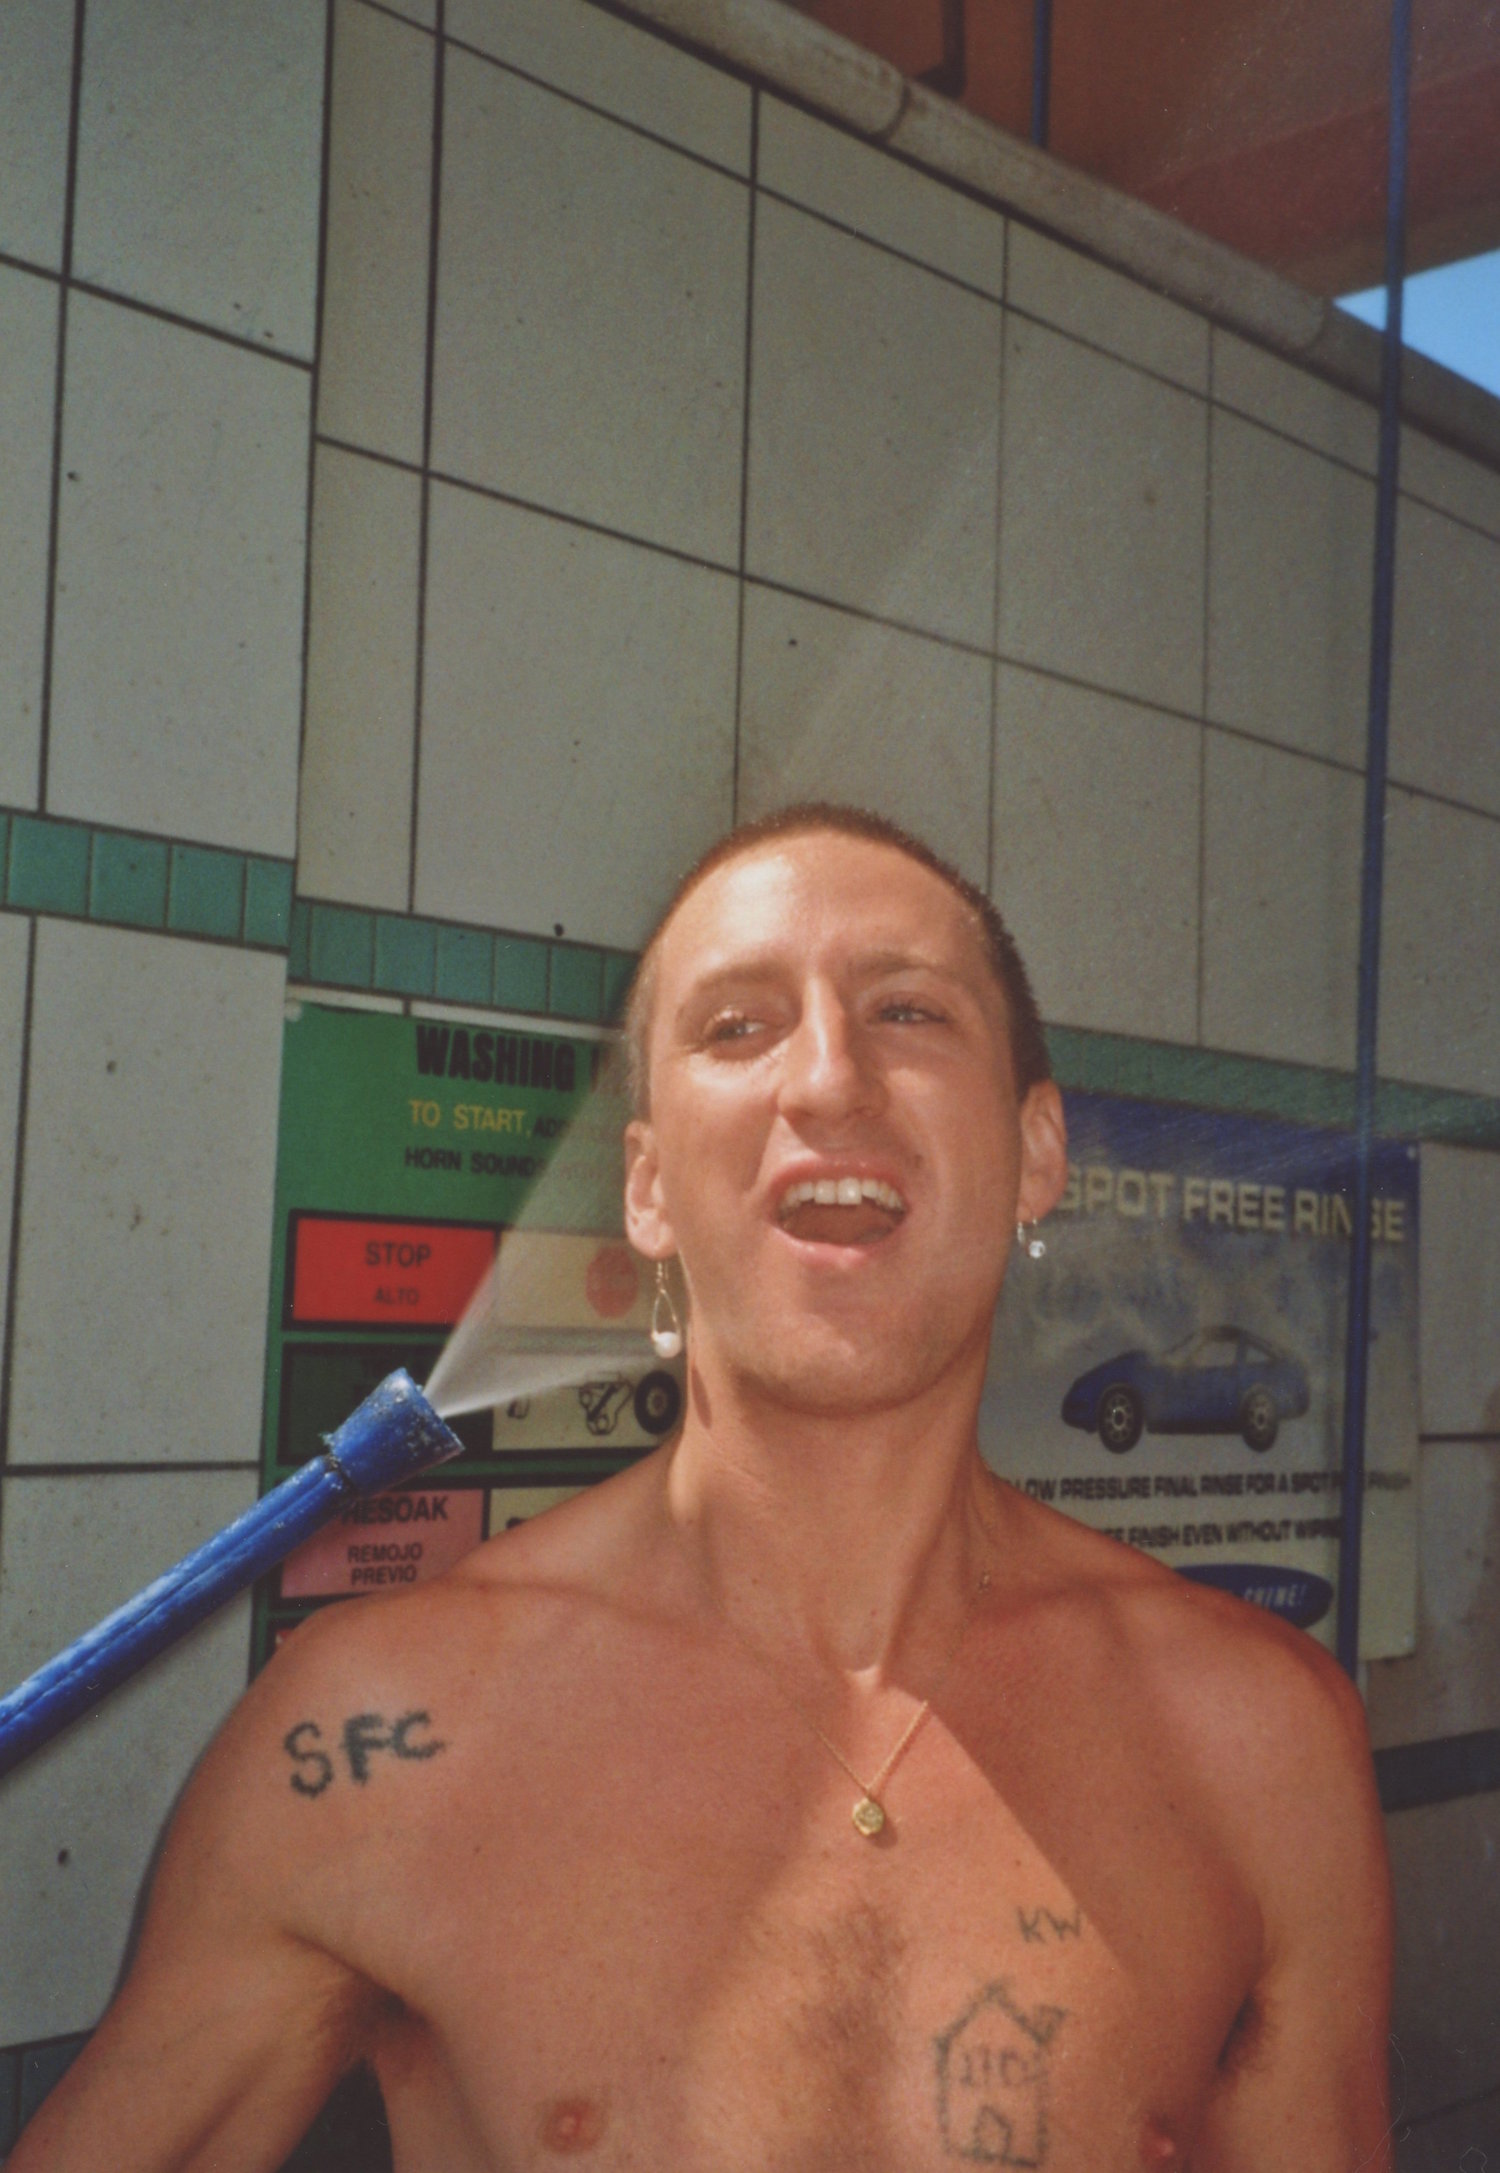 https://www.weirdomusicforever.com/weird-news-and-interviews/2018/8/16/kirin-j-callinan-on-new-albums-upcoming-touring-past-work-and-more